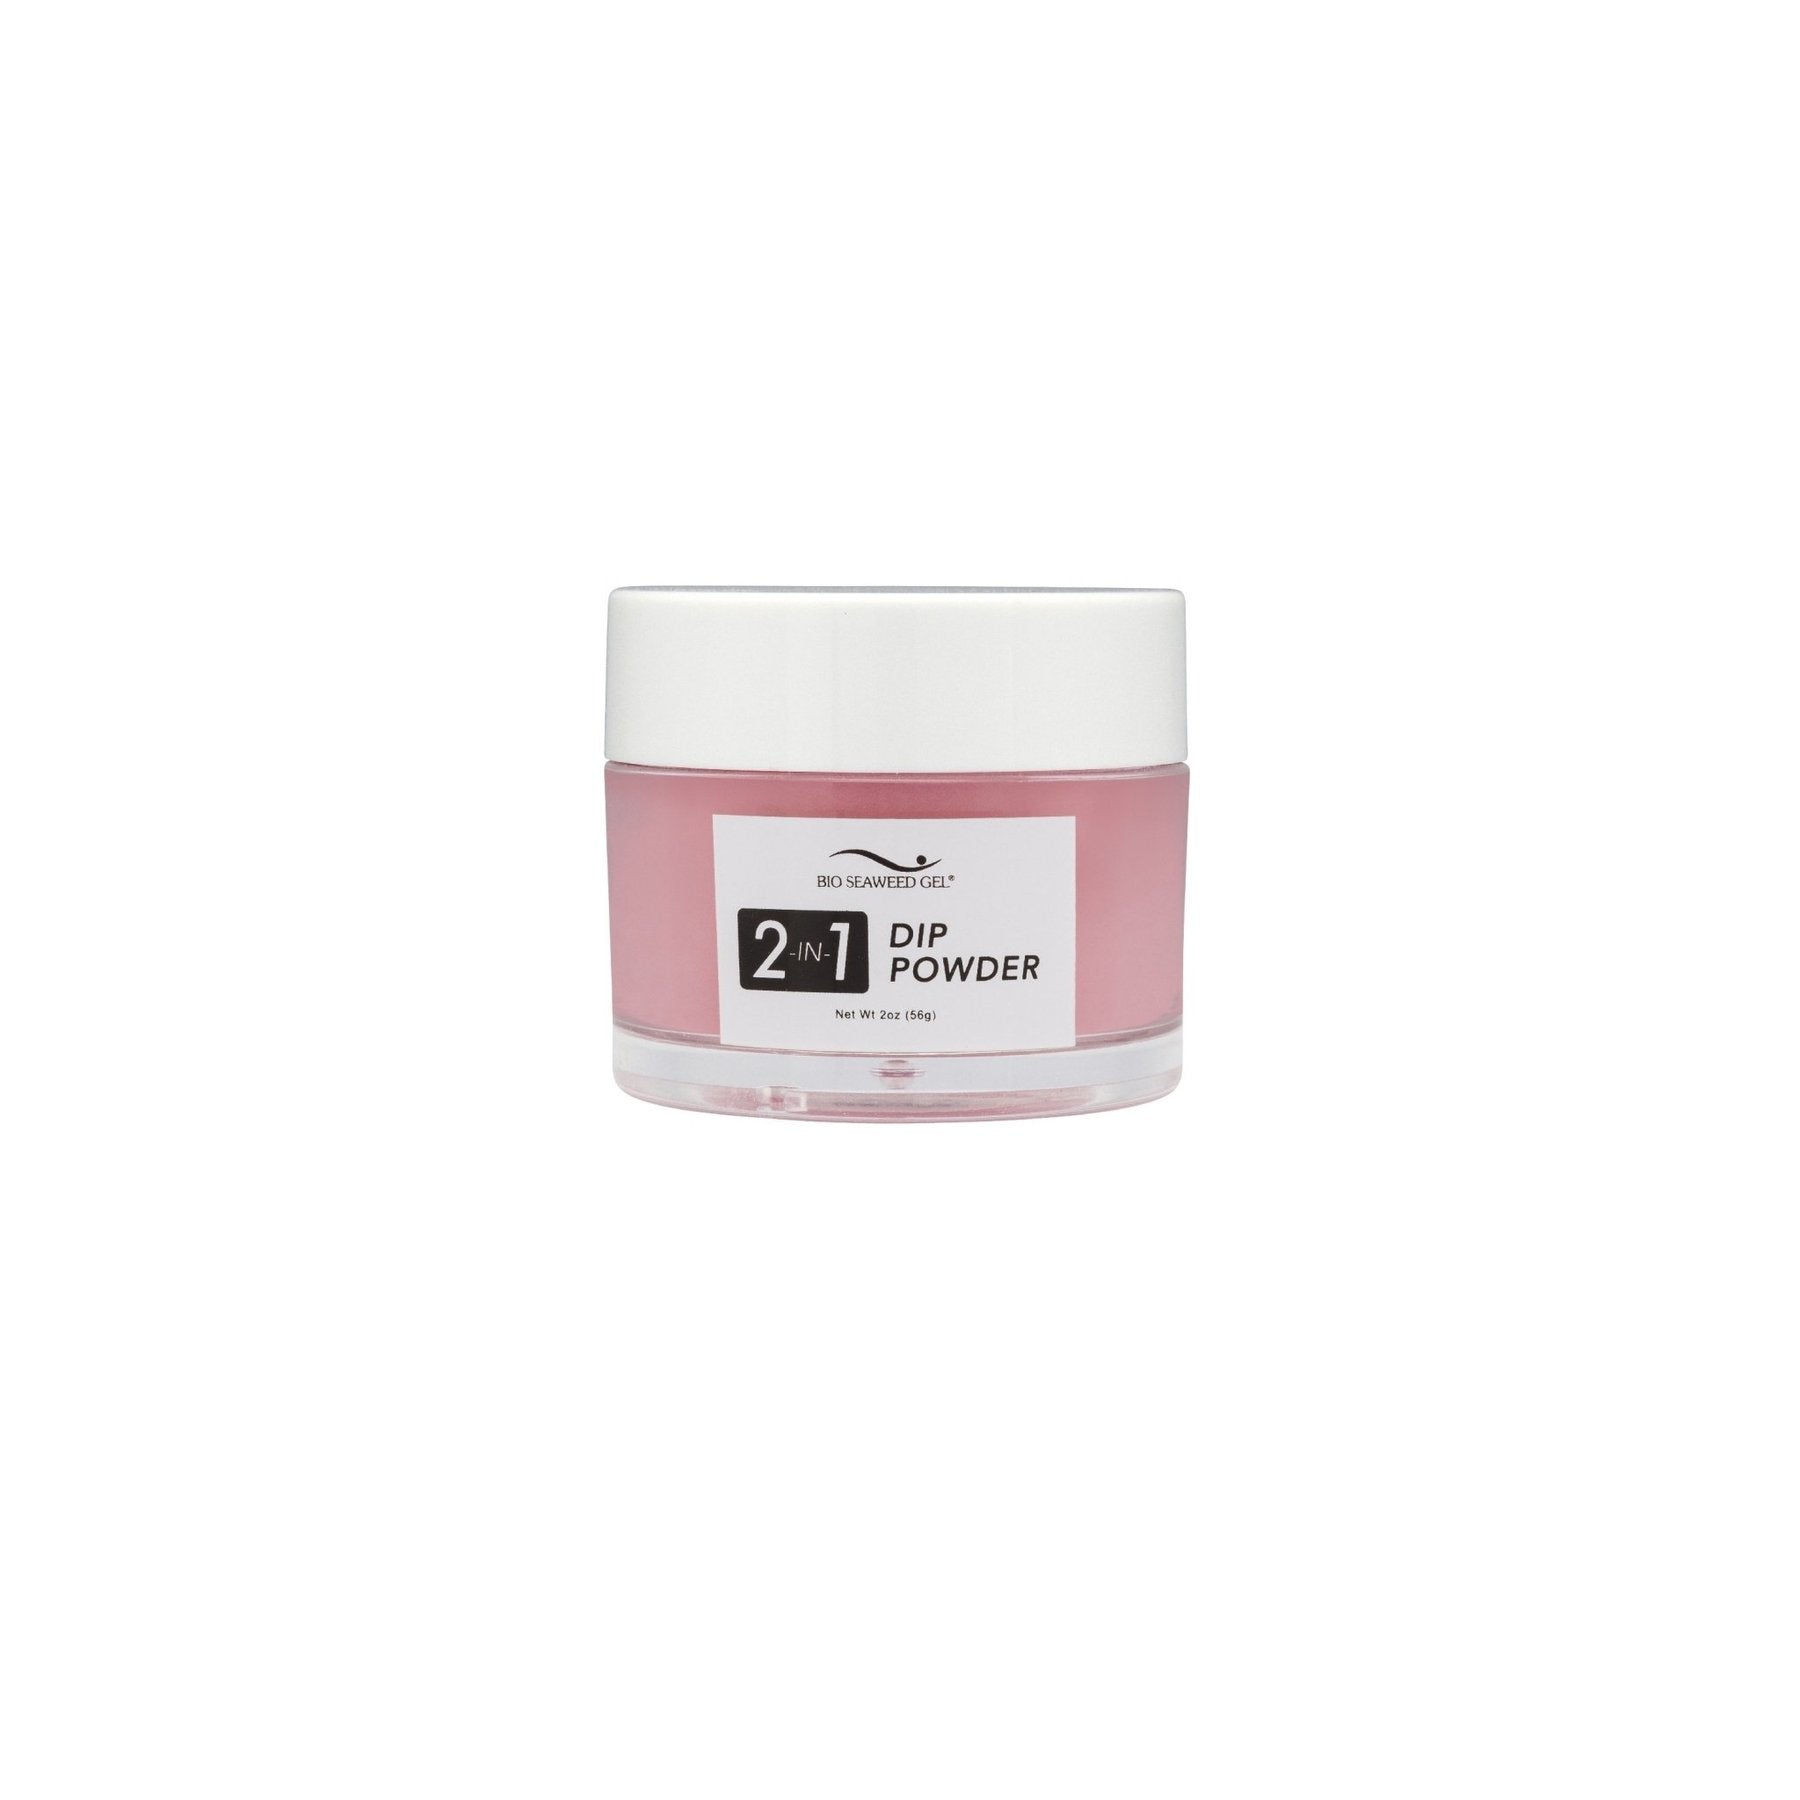 55 BLOSSOM | Bio Seaweed Gel® Dip Powder System - CM Nails & Beauty Supply